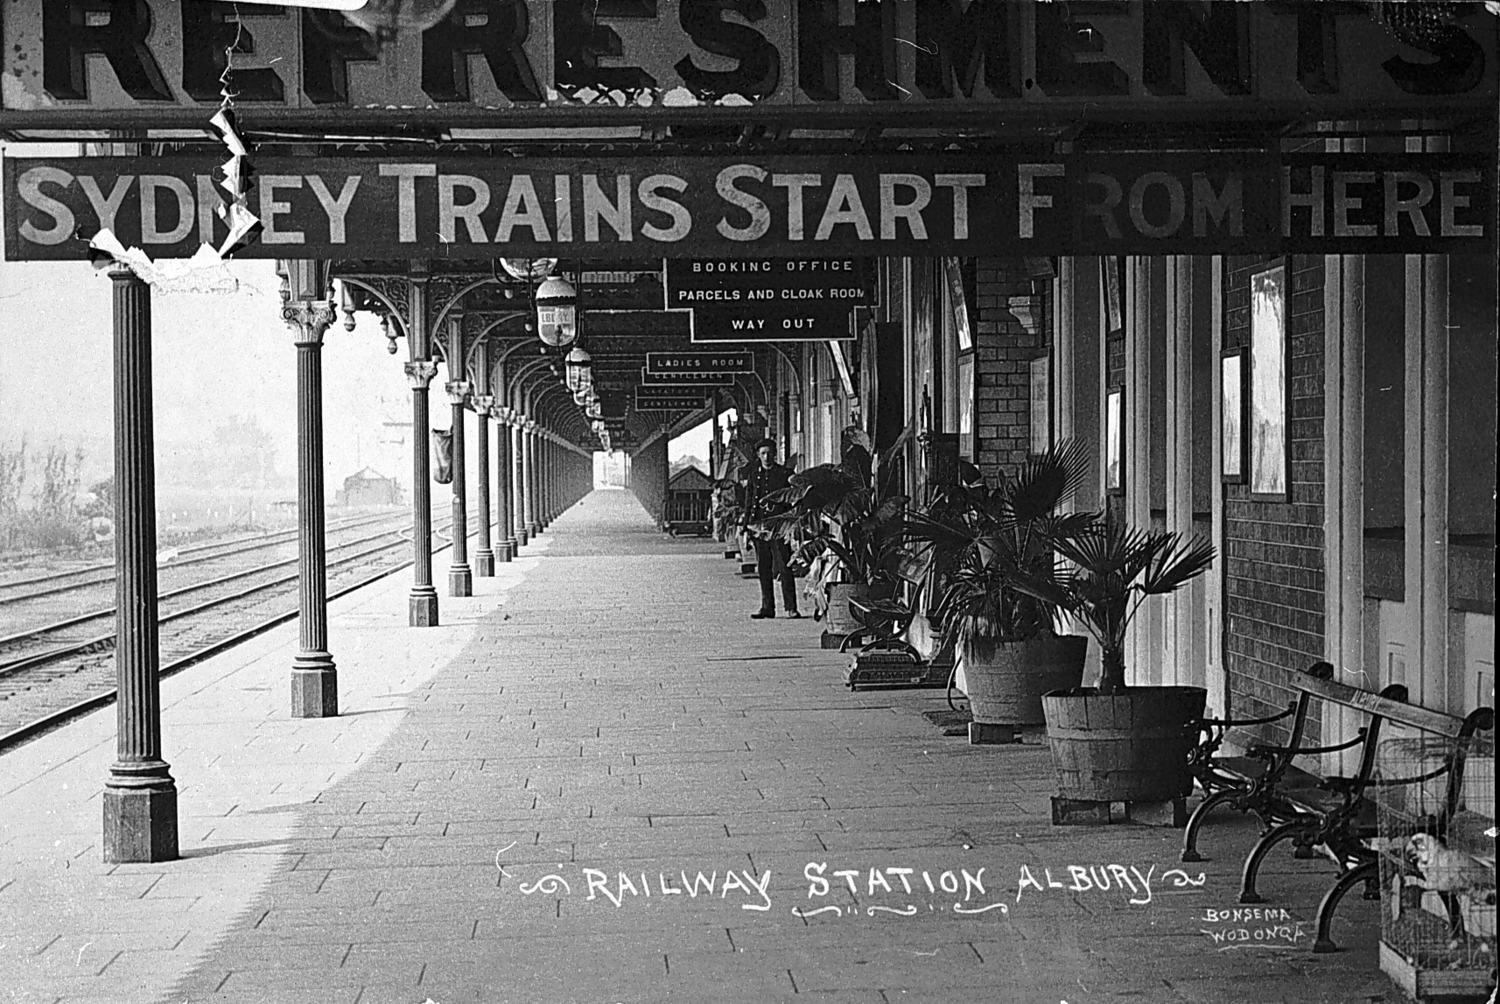 Albury Station 1910, Sydney trains